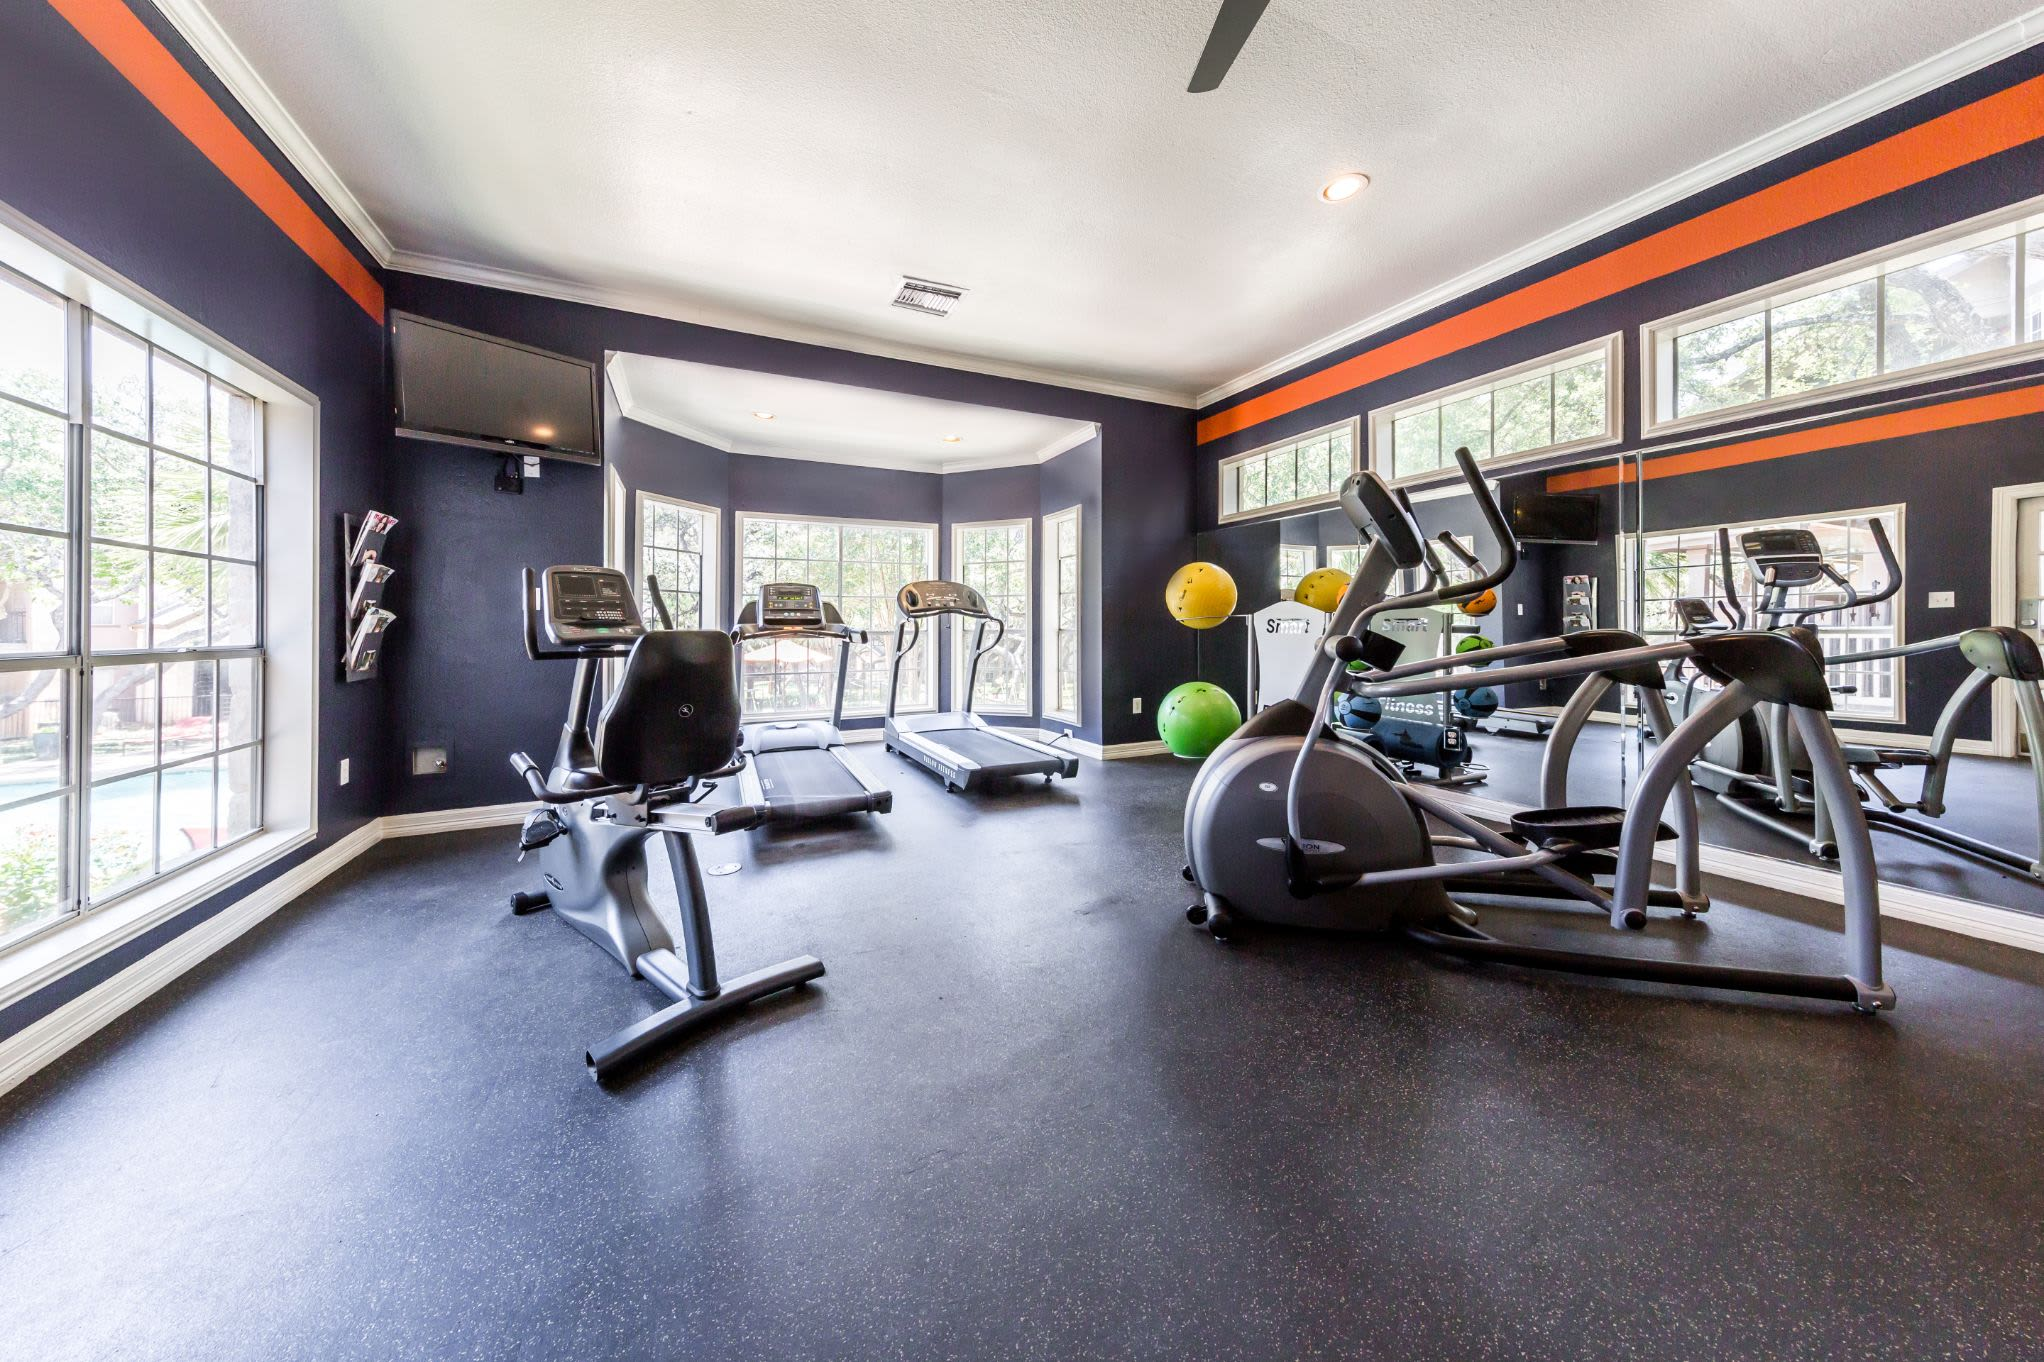 Cardio machines in gym at Marquis at Deerfield in San Antonio, Texas